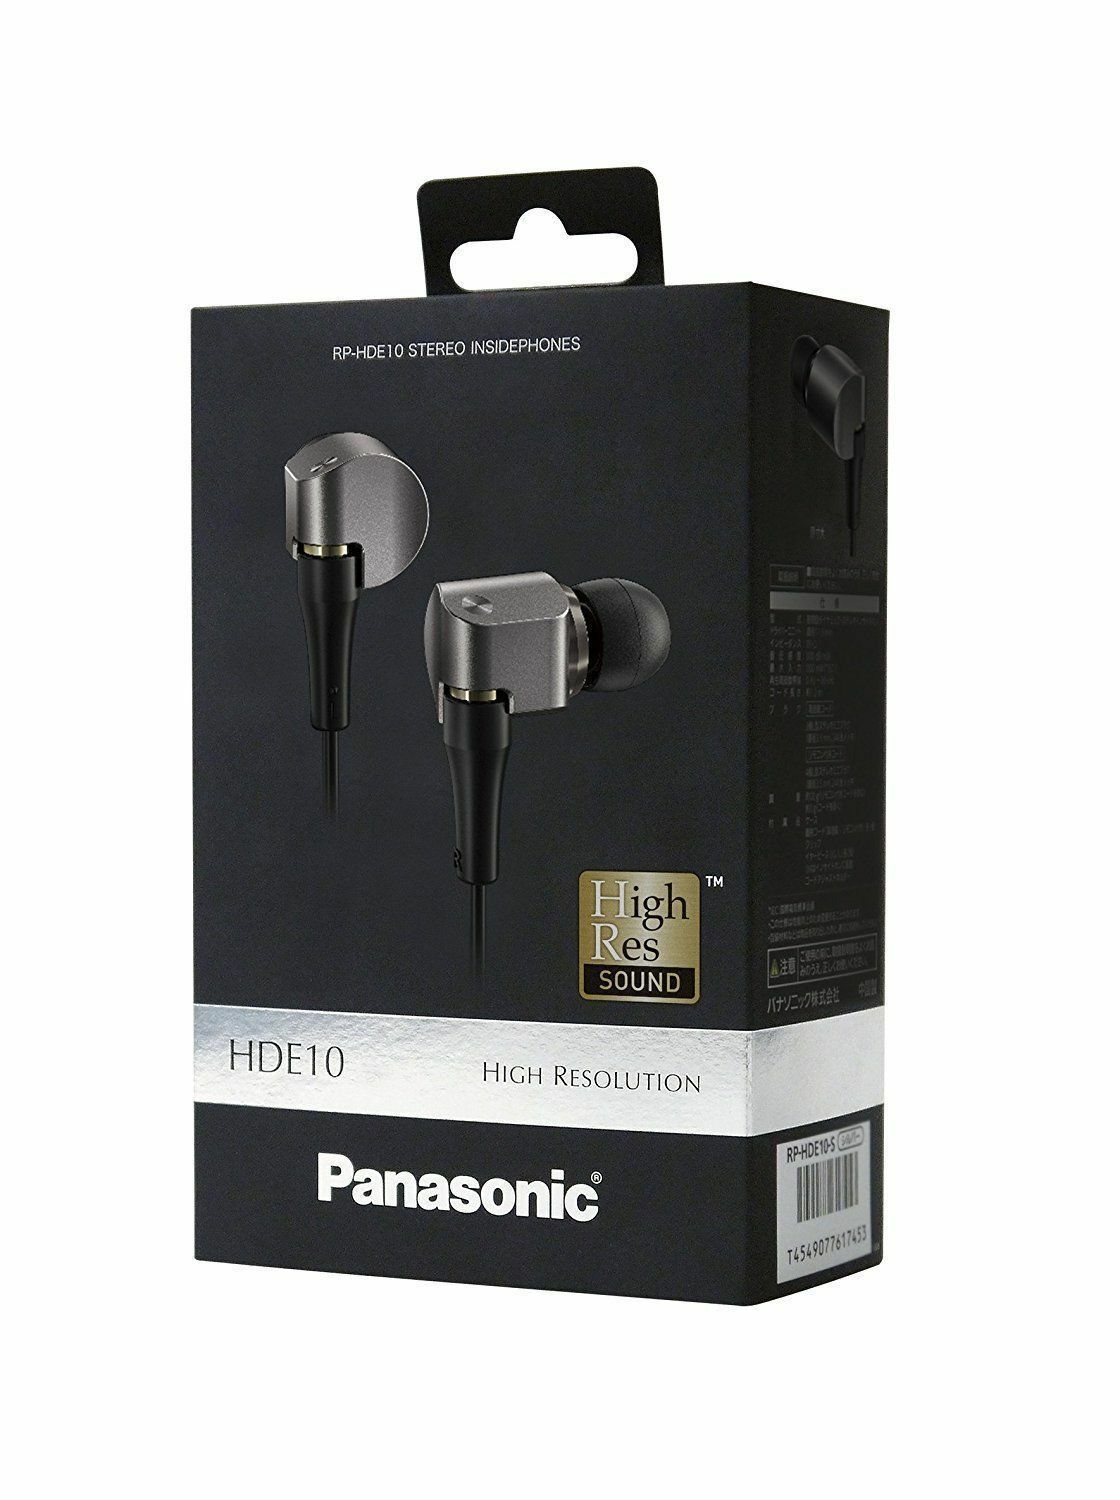 Panasonic Hi-res Sound Canal Type Earphone Rp-hde10-s Silver From Japan for  sale online  3023d80d38